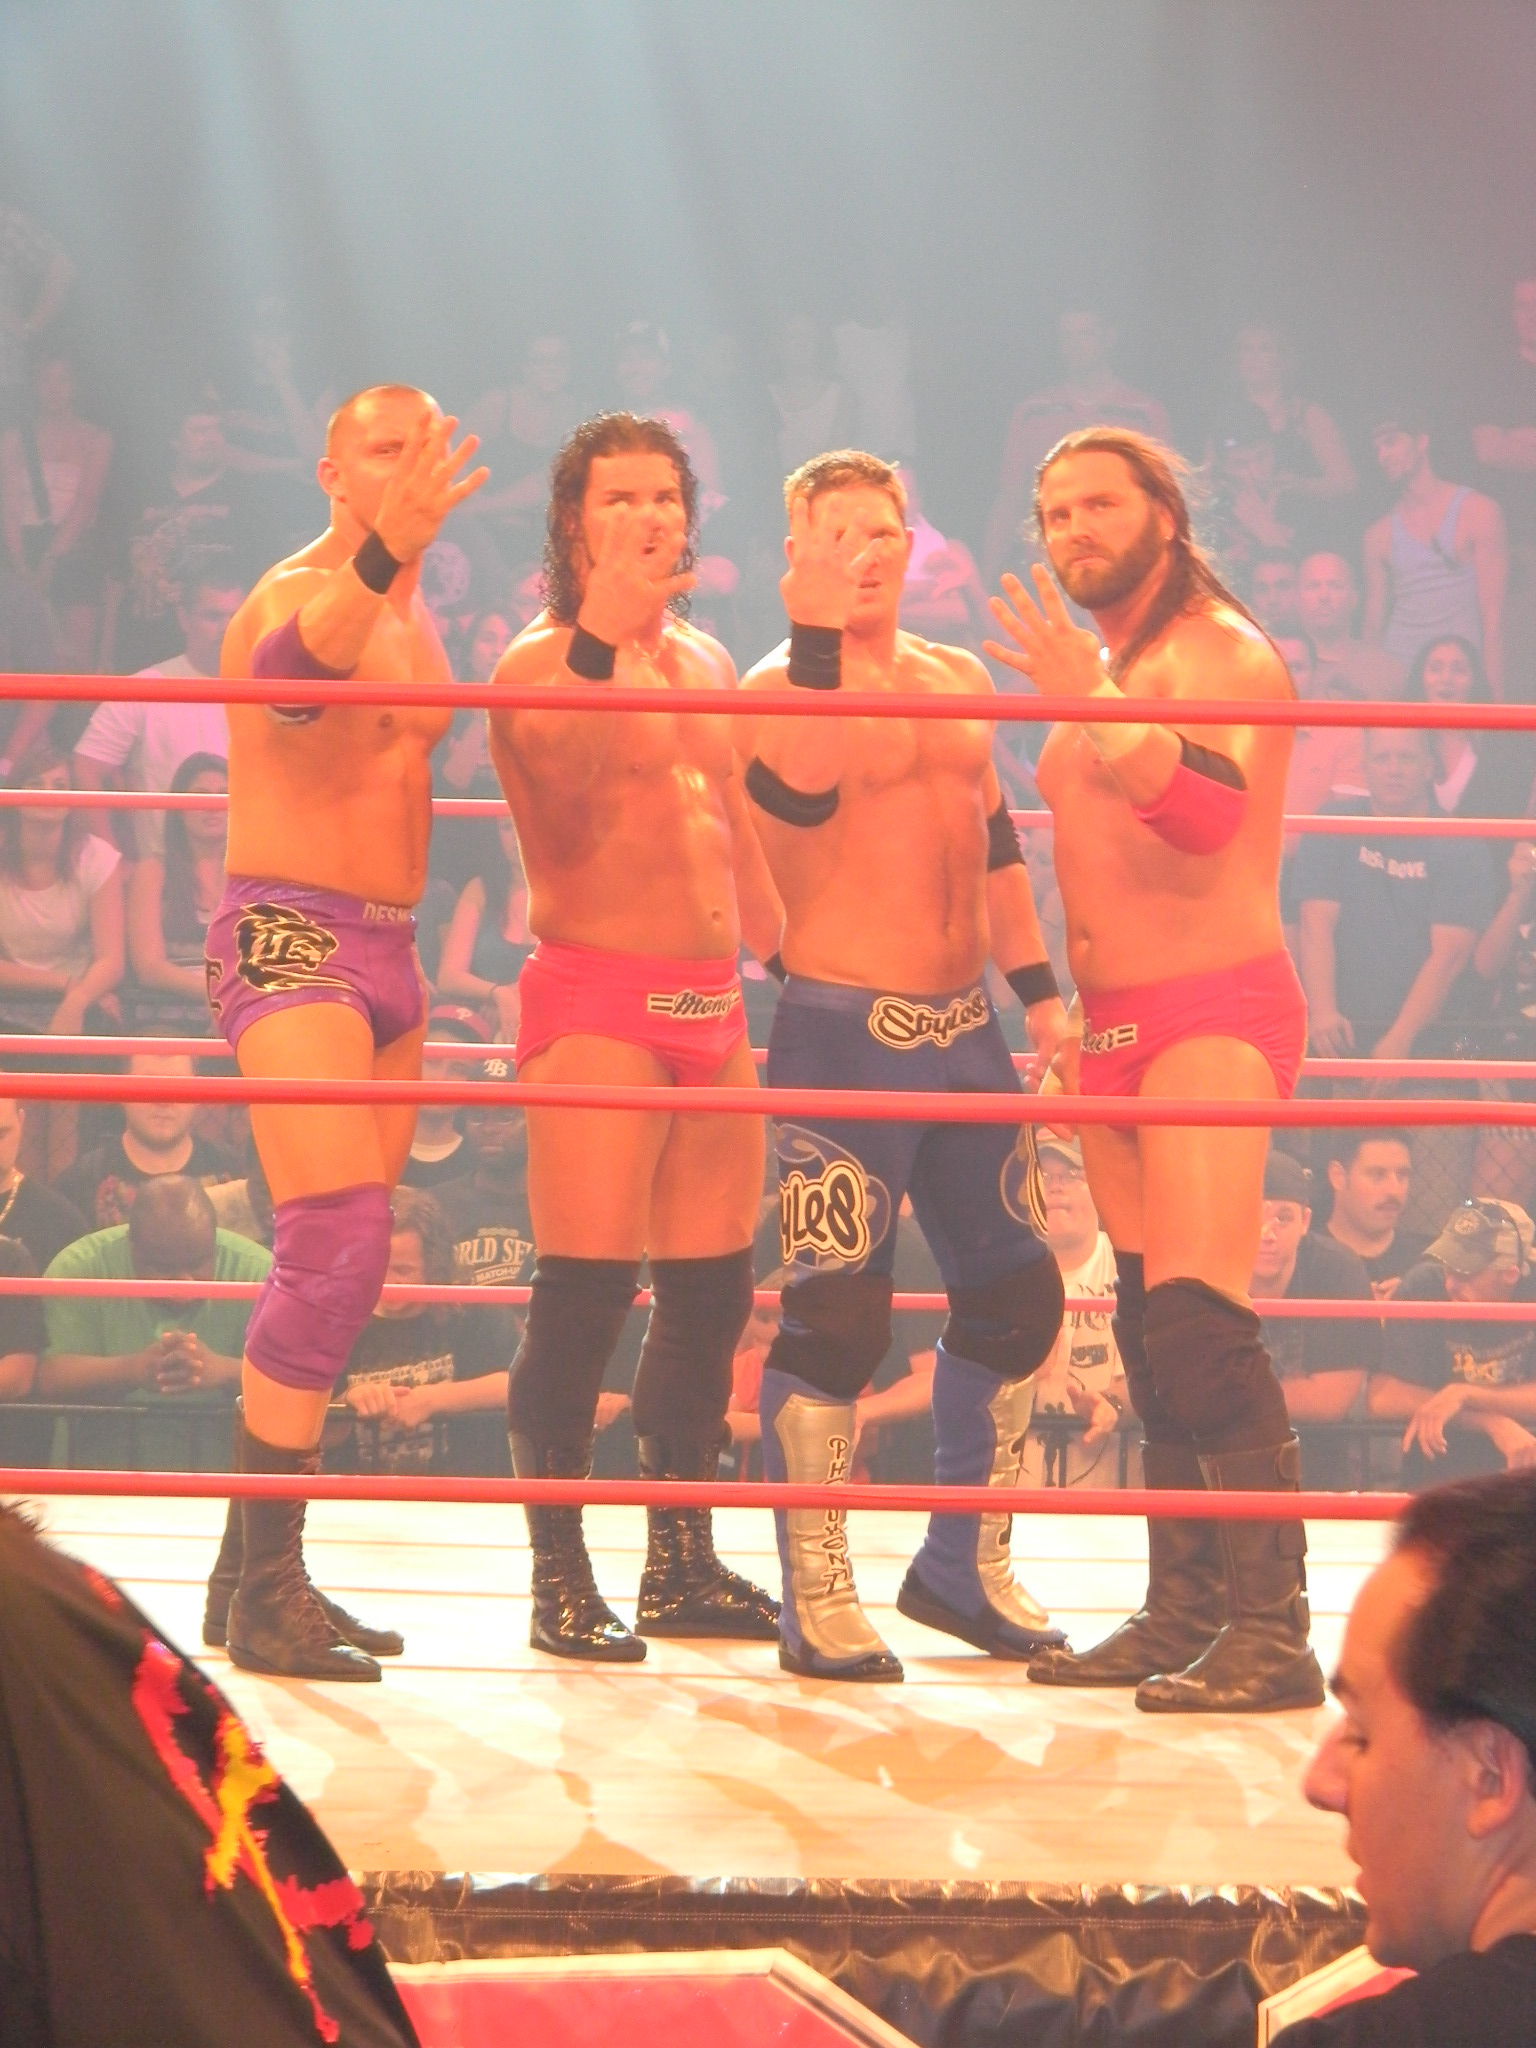 Fourtune hopefuls: (from left to right) Desmond Wolfe, Robert Roode, Styles, and James Storm